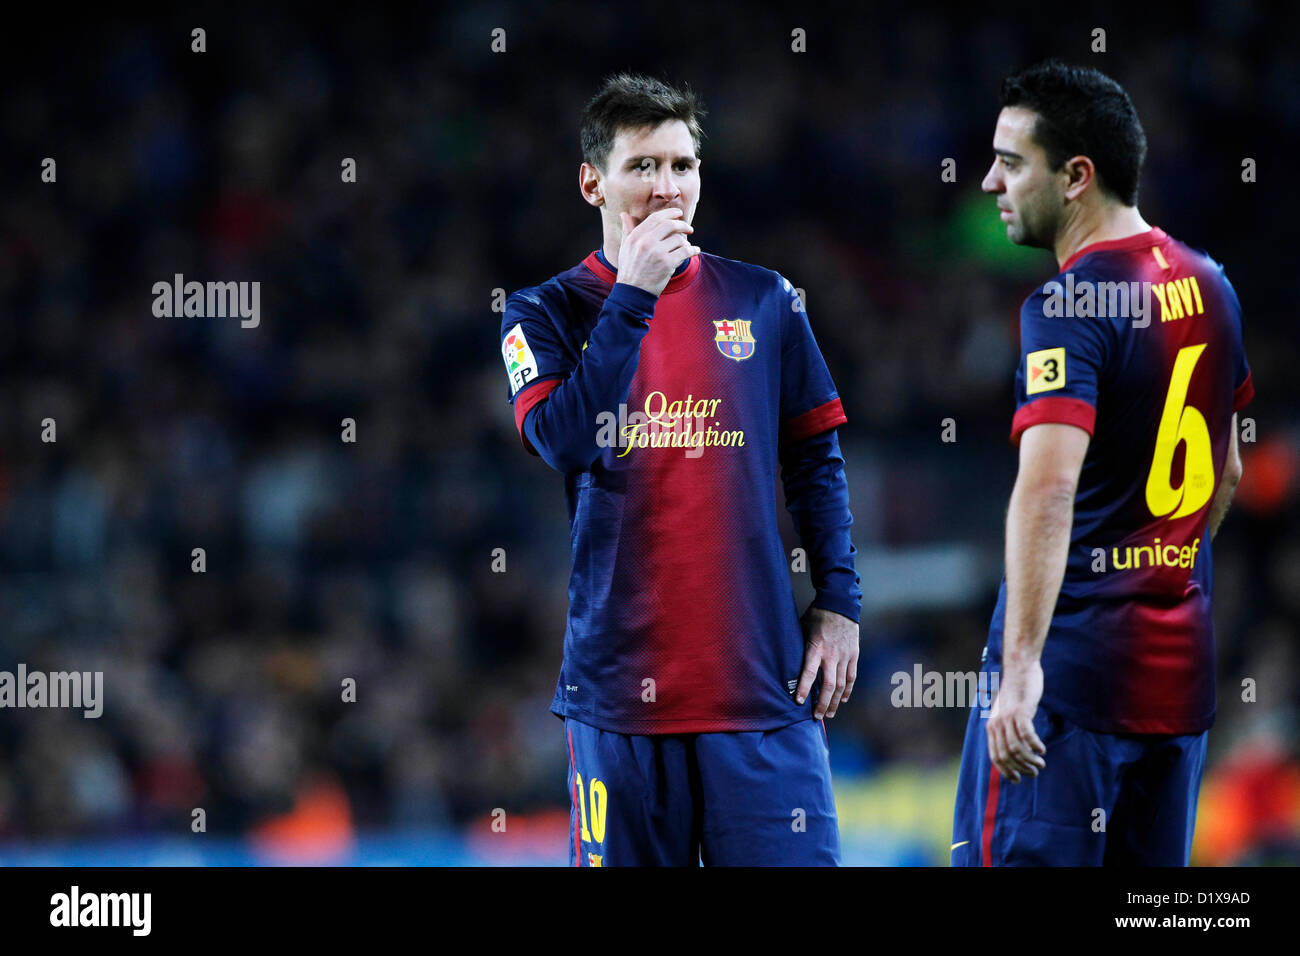 7128ecdc2e5 Lionel Messi Xavi Fc Barcelona Stock Photos   Lionel Messi Xavi Fc ...